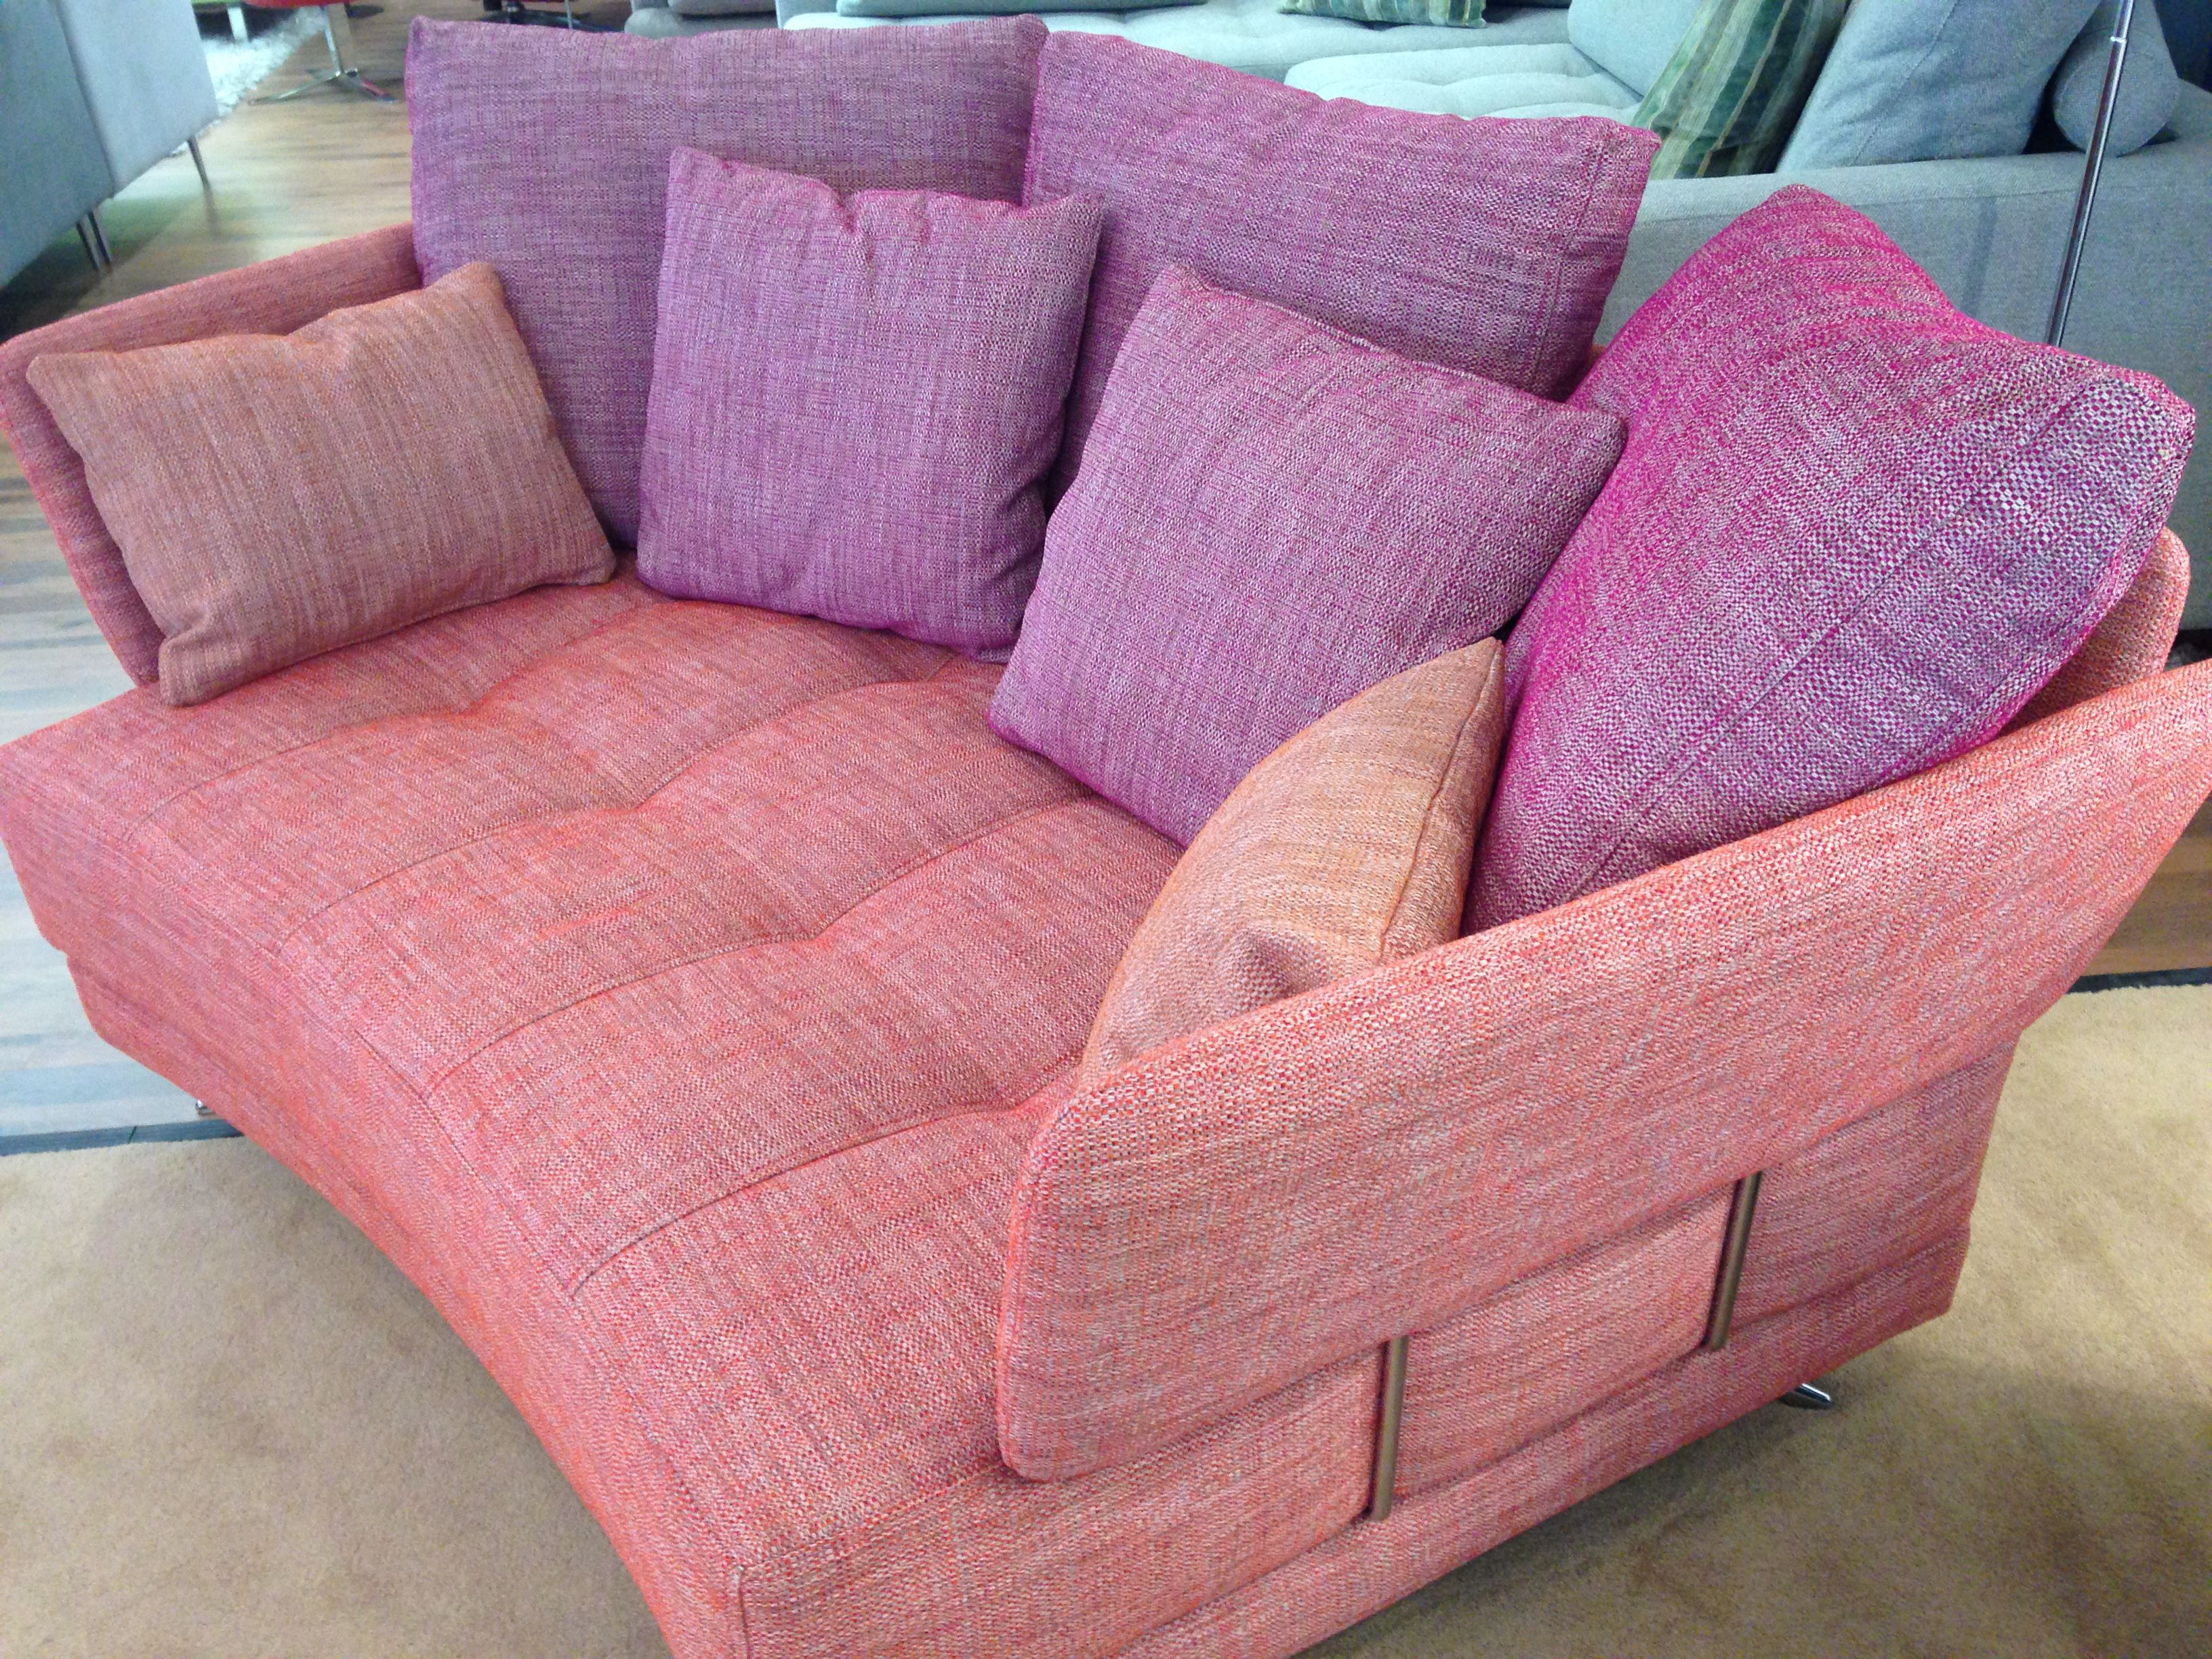 New Model For Summer 2016 This Is A Shaped Snuggler Small Sofa Measuring 188 Cm At The Back 152 Cm At The Front We Used Customised Sofa Small Sofa Sofa